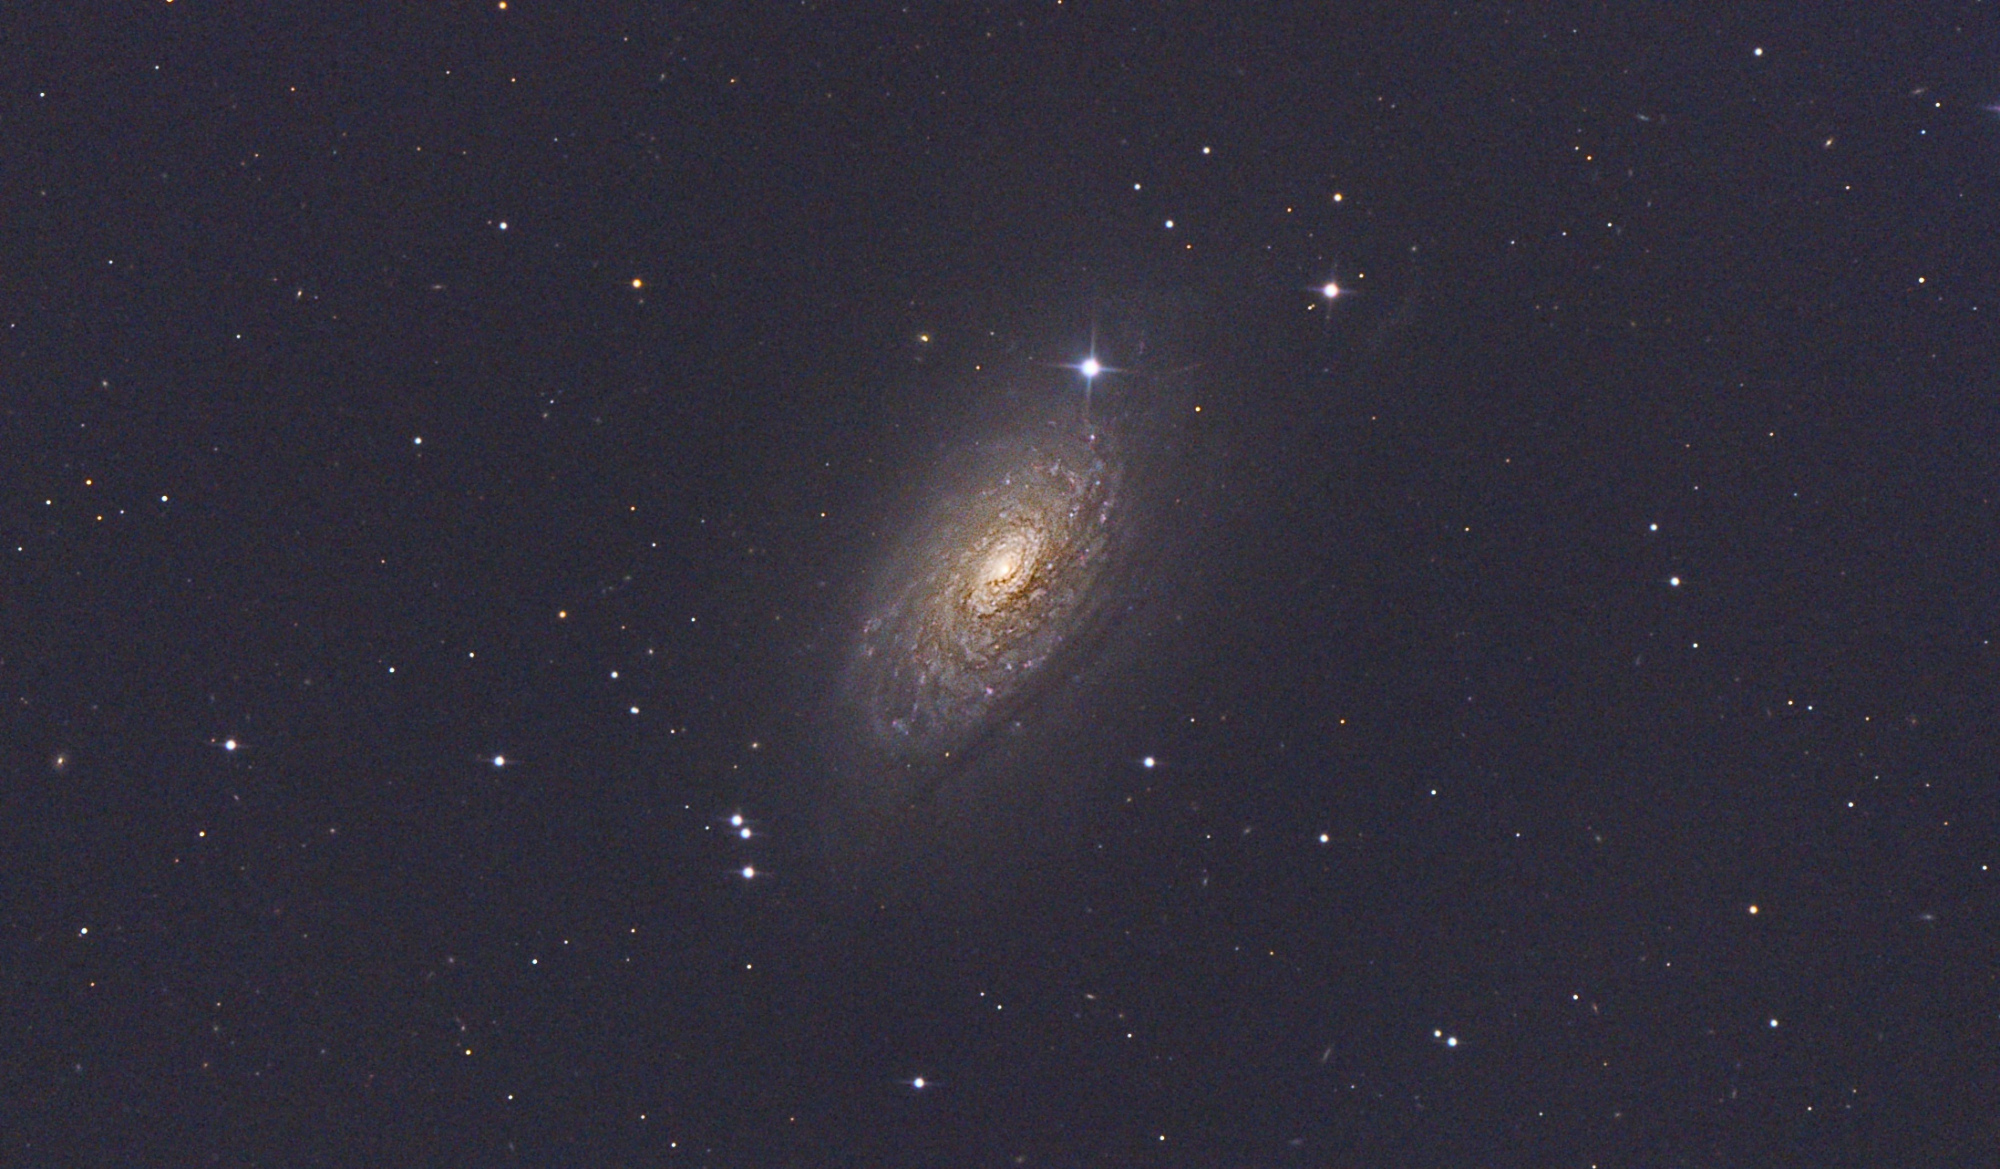 m63_r_pp_images_stacked_linear_1500_p59.thumb.jpg.0be51e35928163d02644d3443592aeaa.jpg